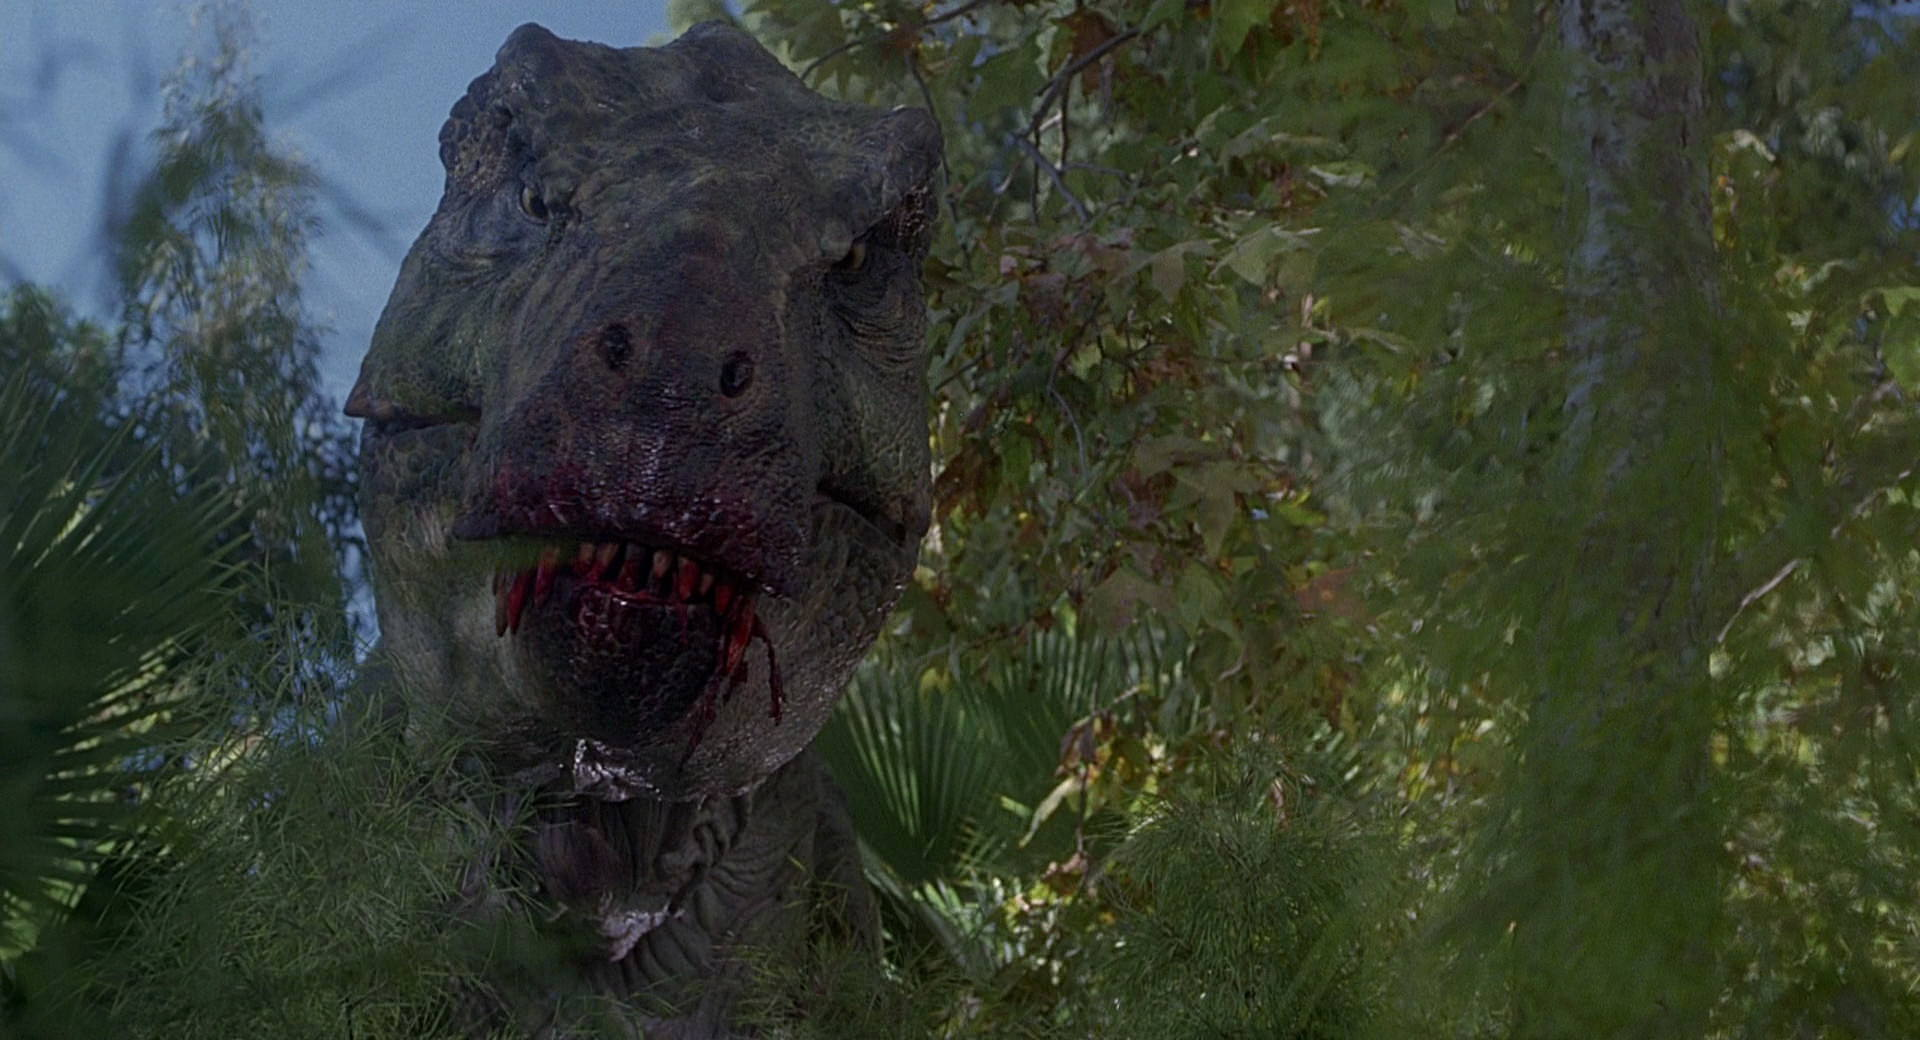 Best and worst moments of Animatronics in the JP quadrilogy?   Jurassic-park3-movie-screencaps.com-3112